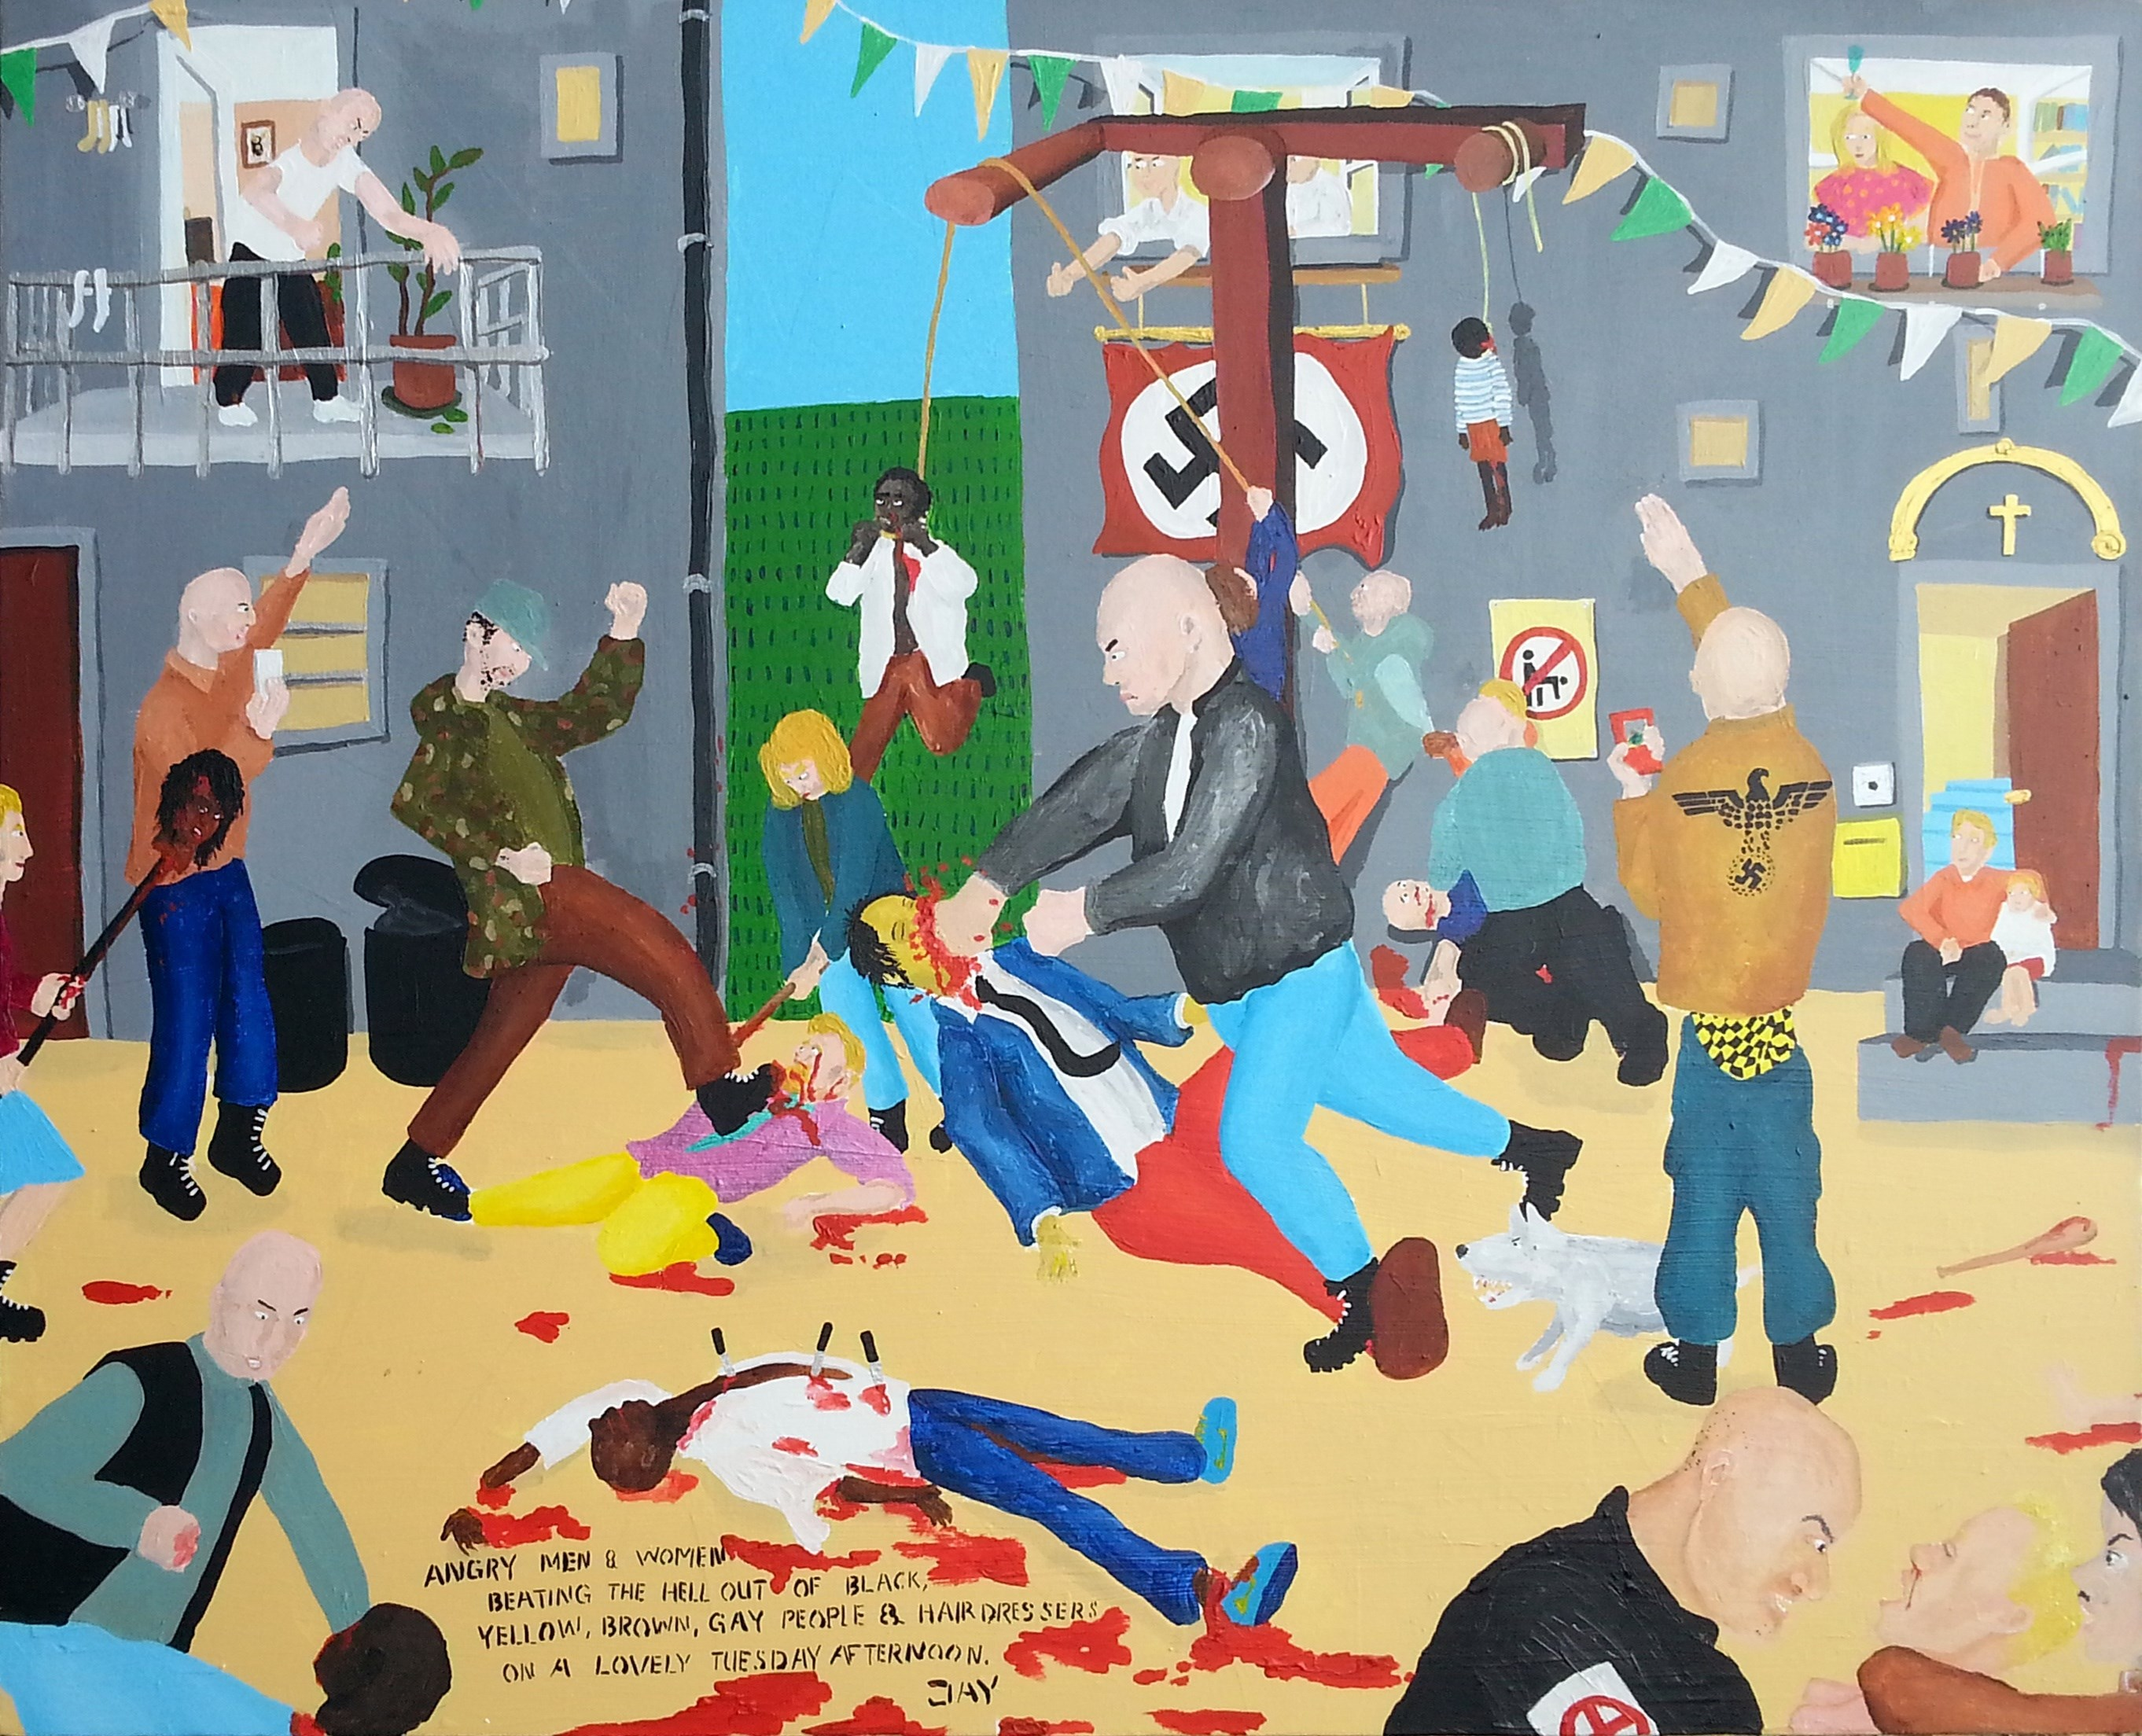 Bad painting number 01: Angry men & women beating the hell out of black, yellow, brown, gay people & hairdressers on a lovely Tuesday afternoon., Pintura Acrílico Vanguarda original por Jay Rechsteiner